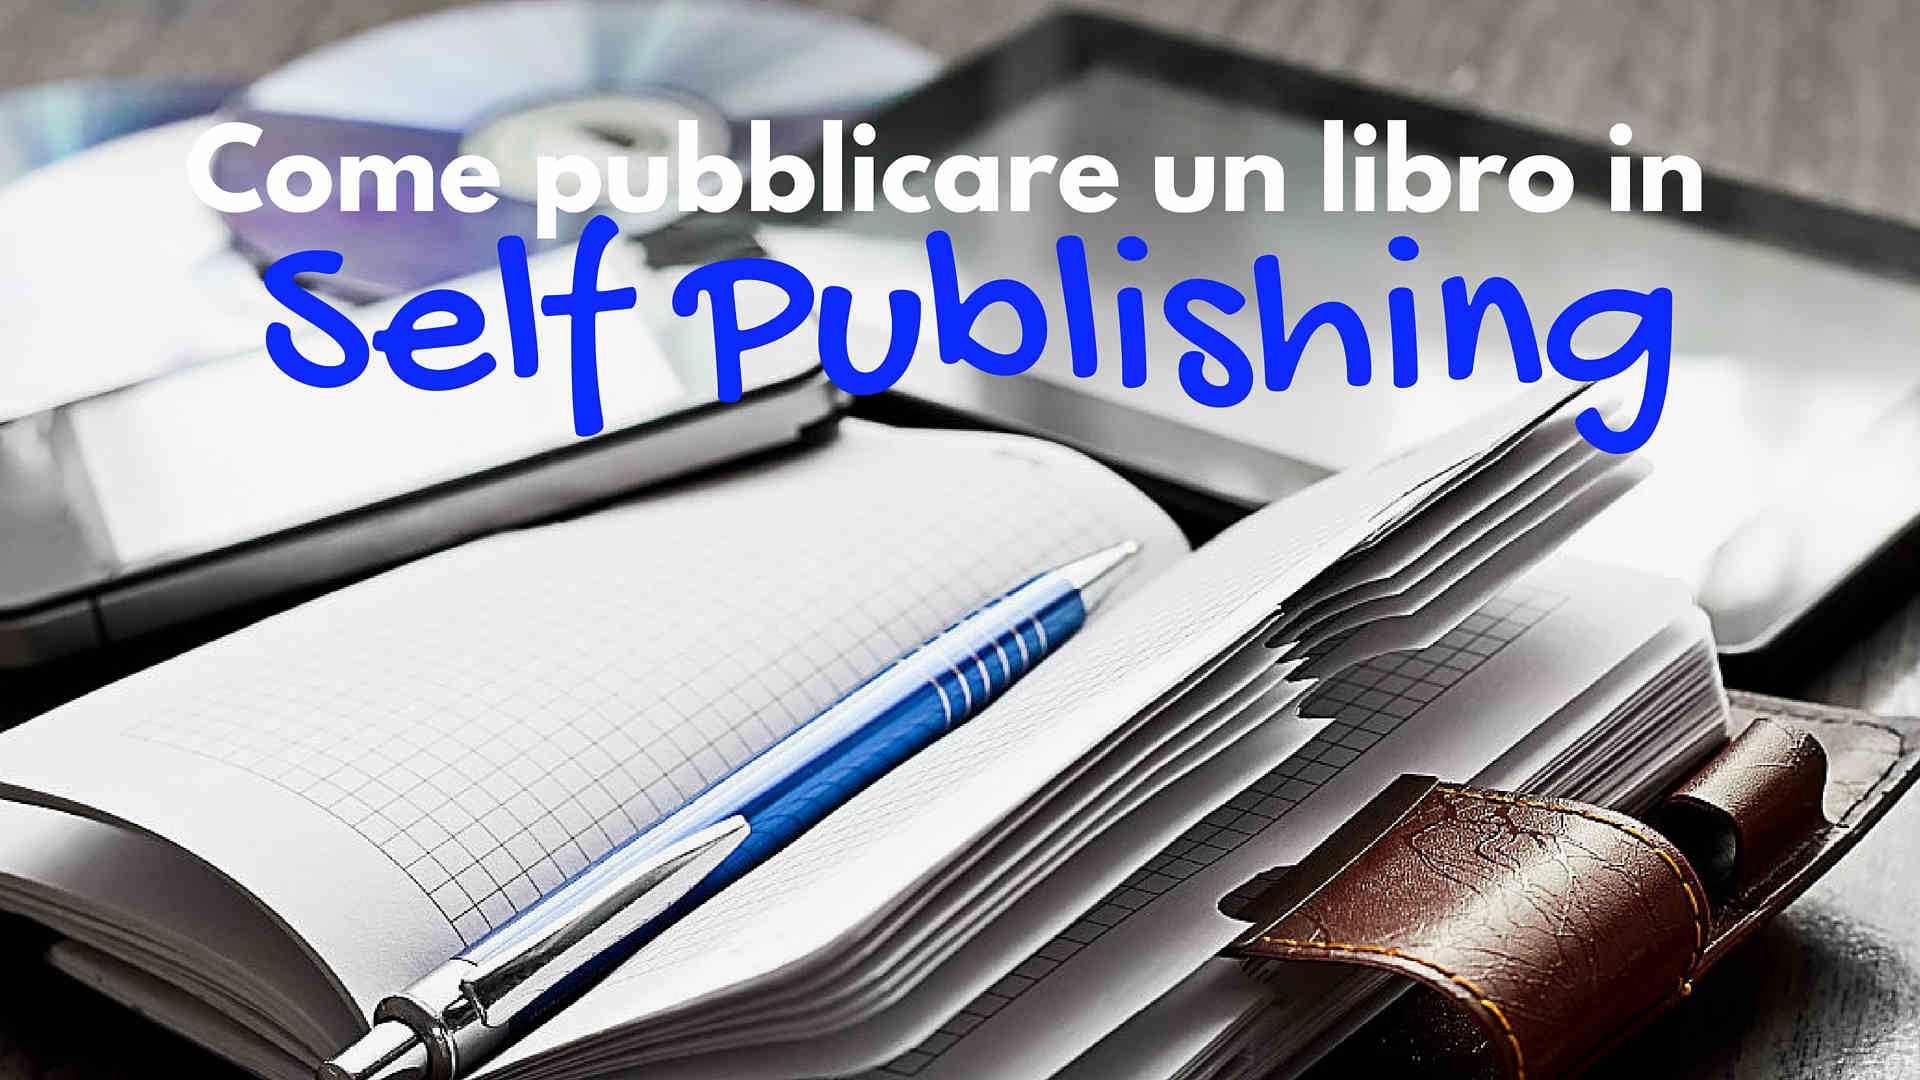 Come pubblicare un libro in Self Publishing